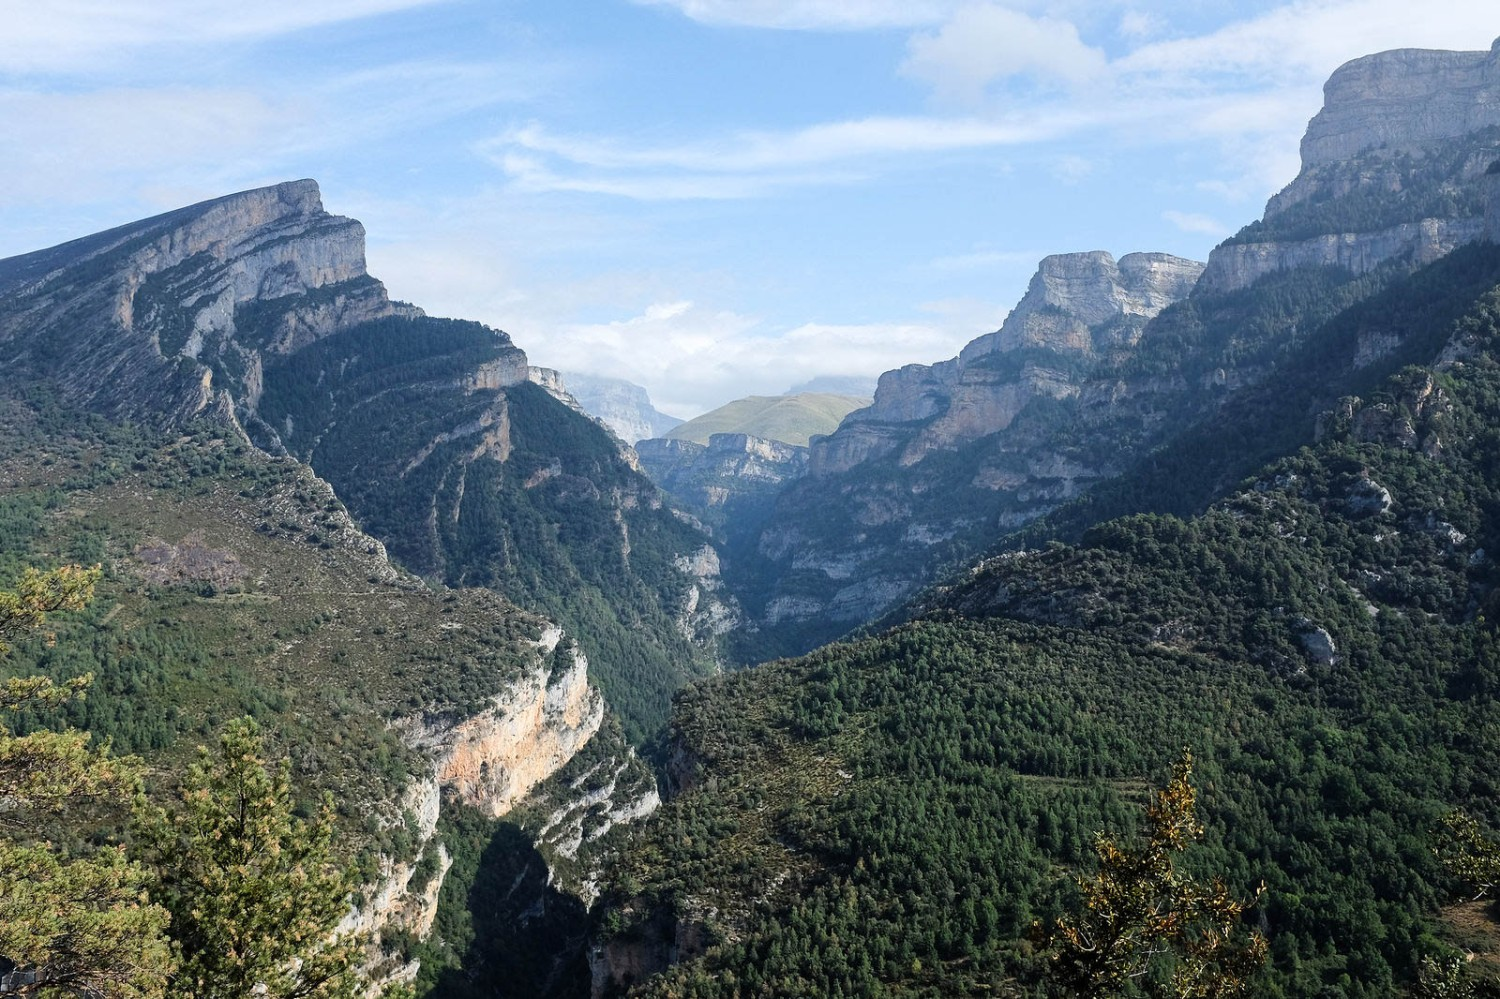 Incroyable point de vue sur le canyon d'Añisclo